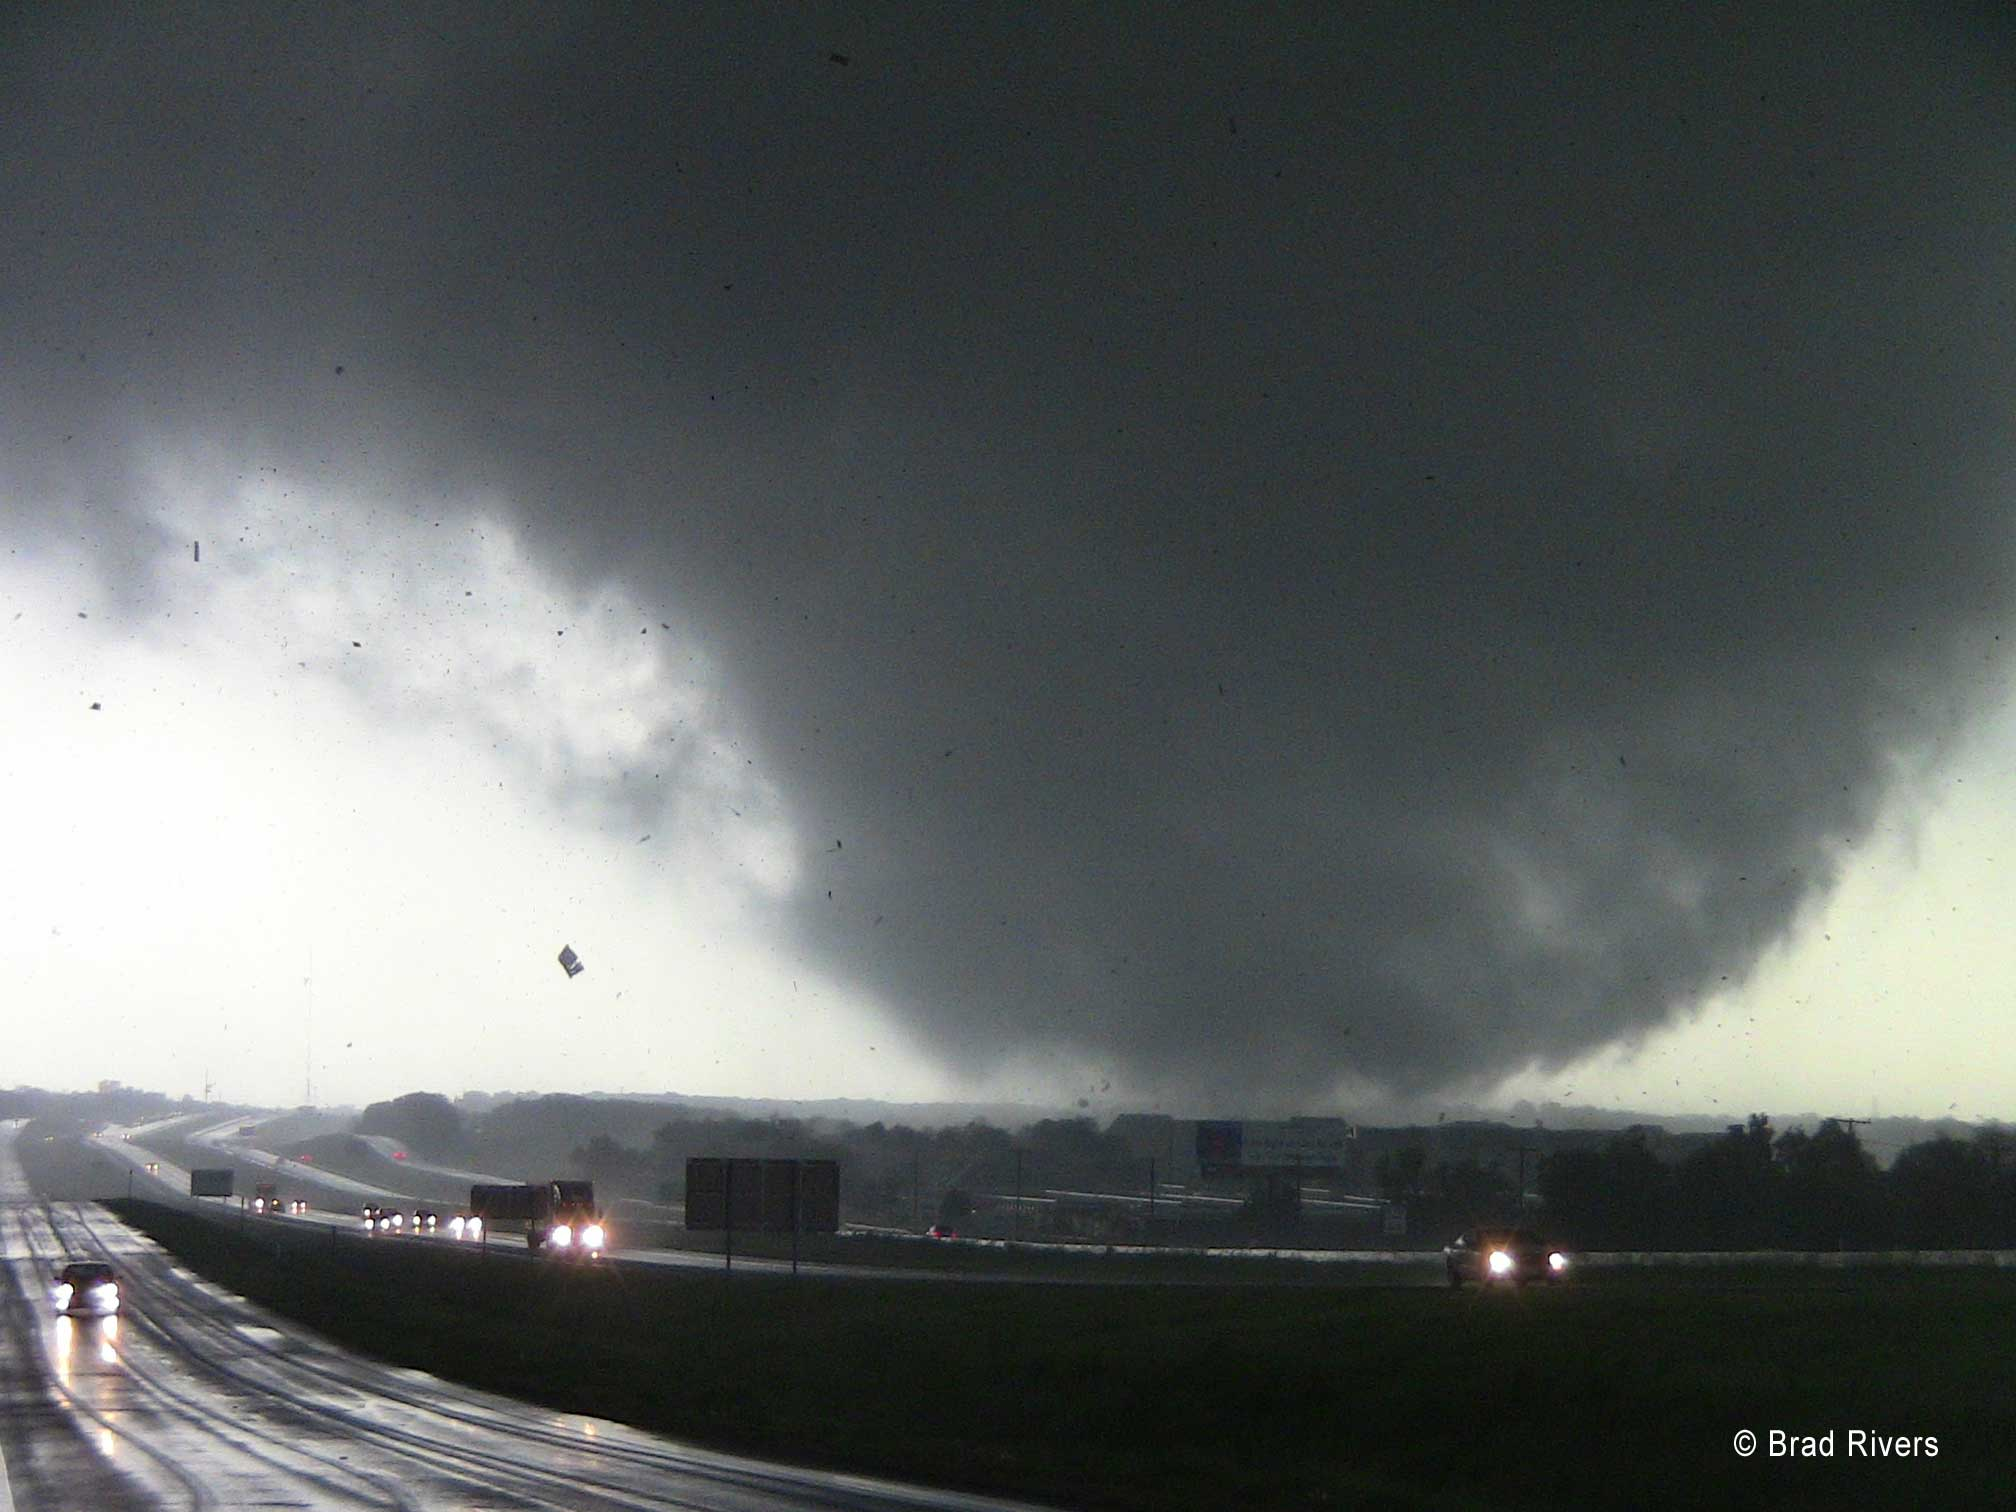 Violent Tornadoes Expected in NW Texas, Panhandle & Oklahoma